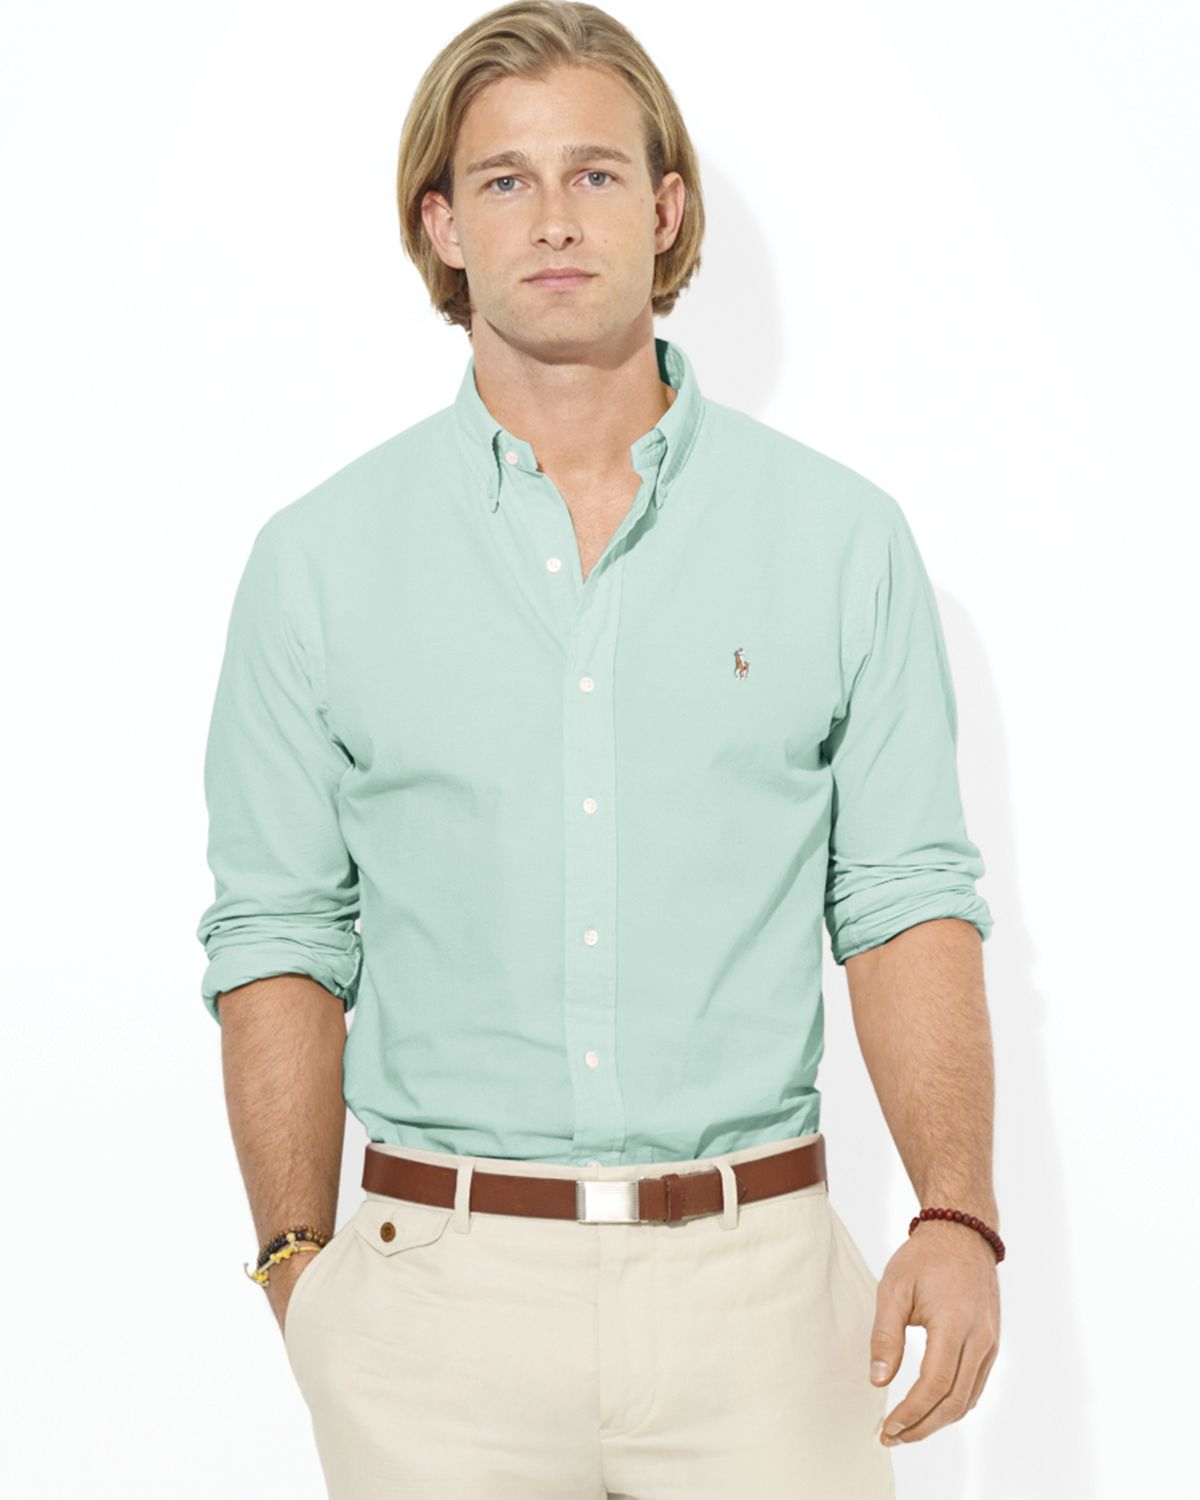 562dd785dc1 ... amazon lyst ralph lauren polo customfit chambray sport shirt in green  for men 7119b dcc24